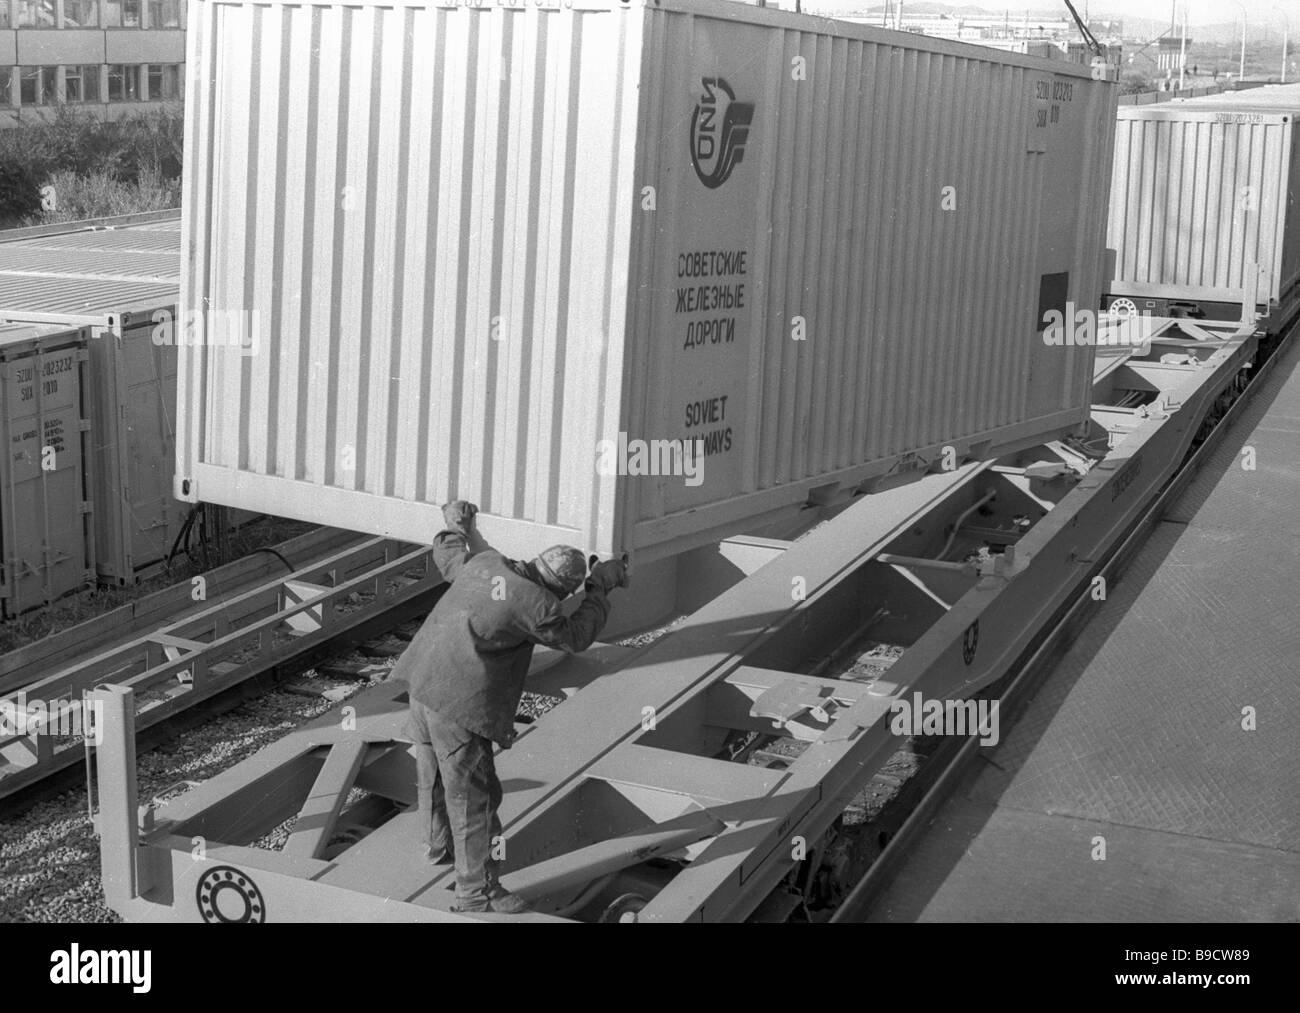 A universal container made at the Abakanvagonmash coach building production association - Stock Image